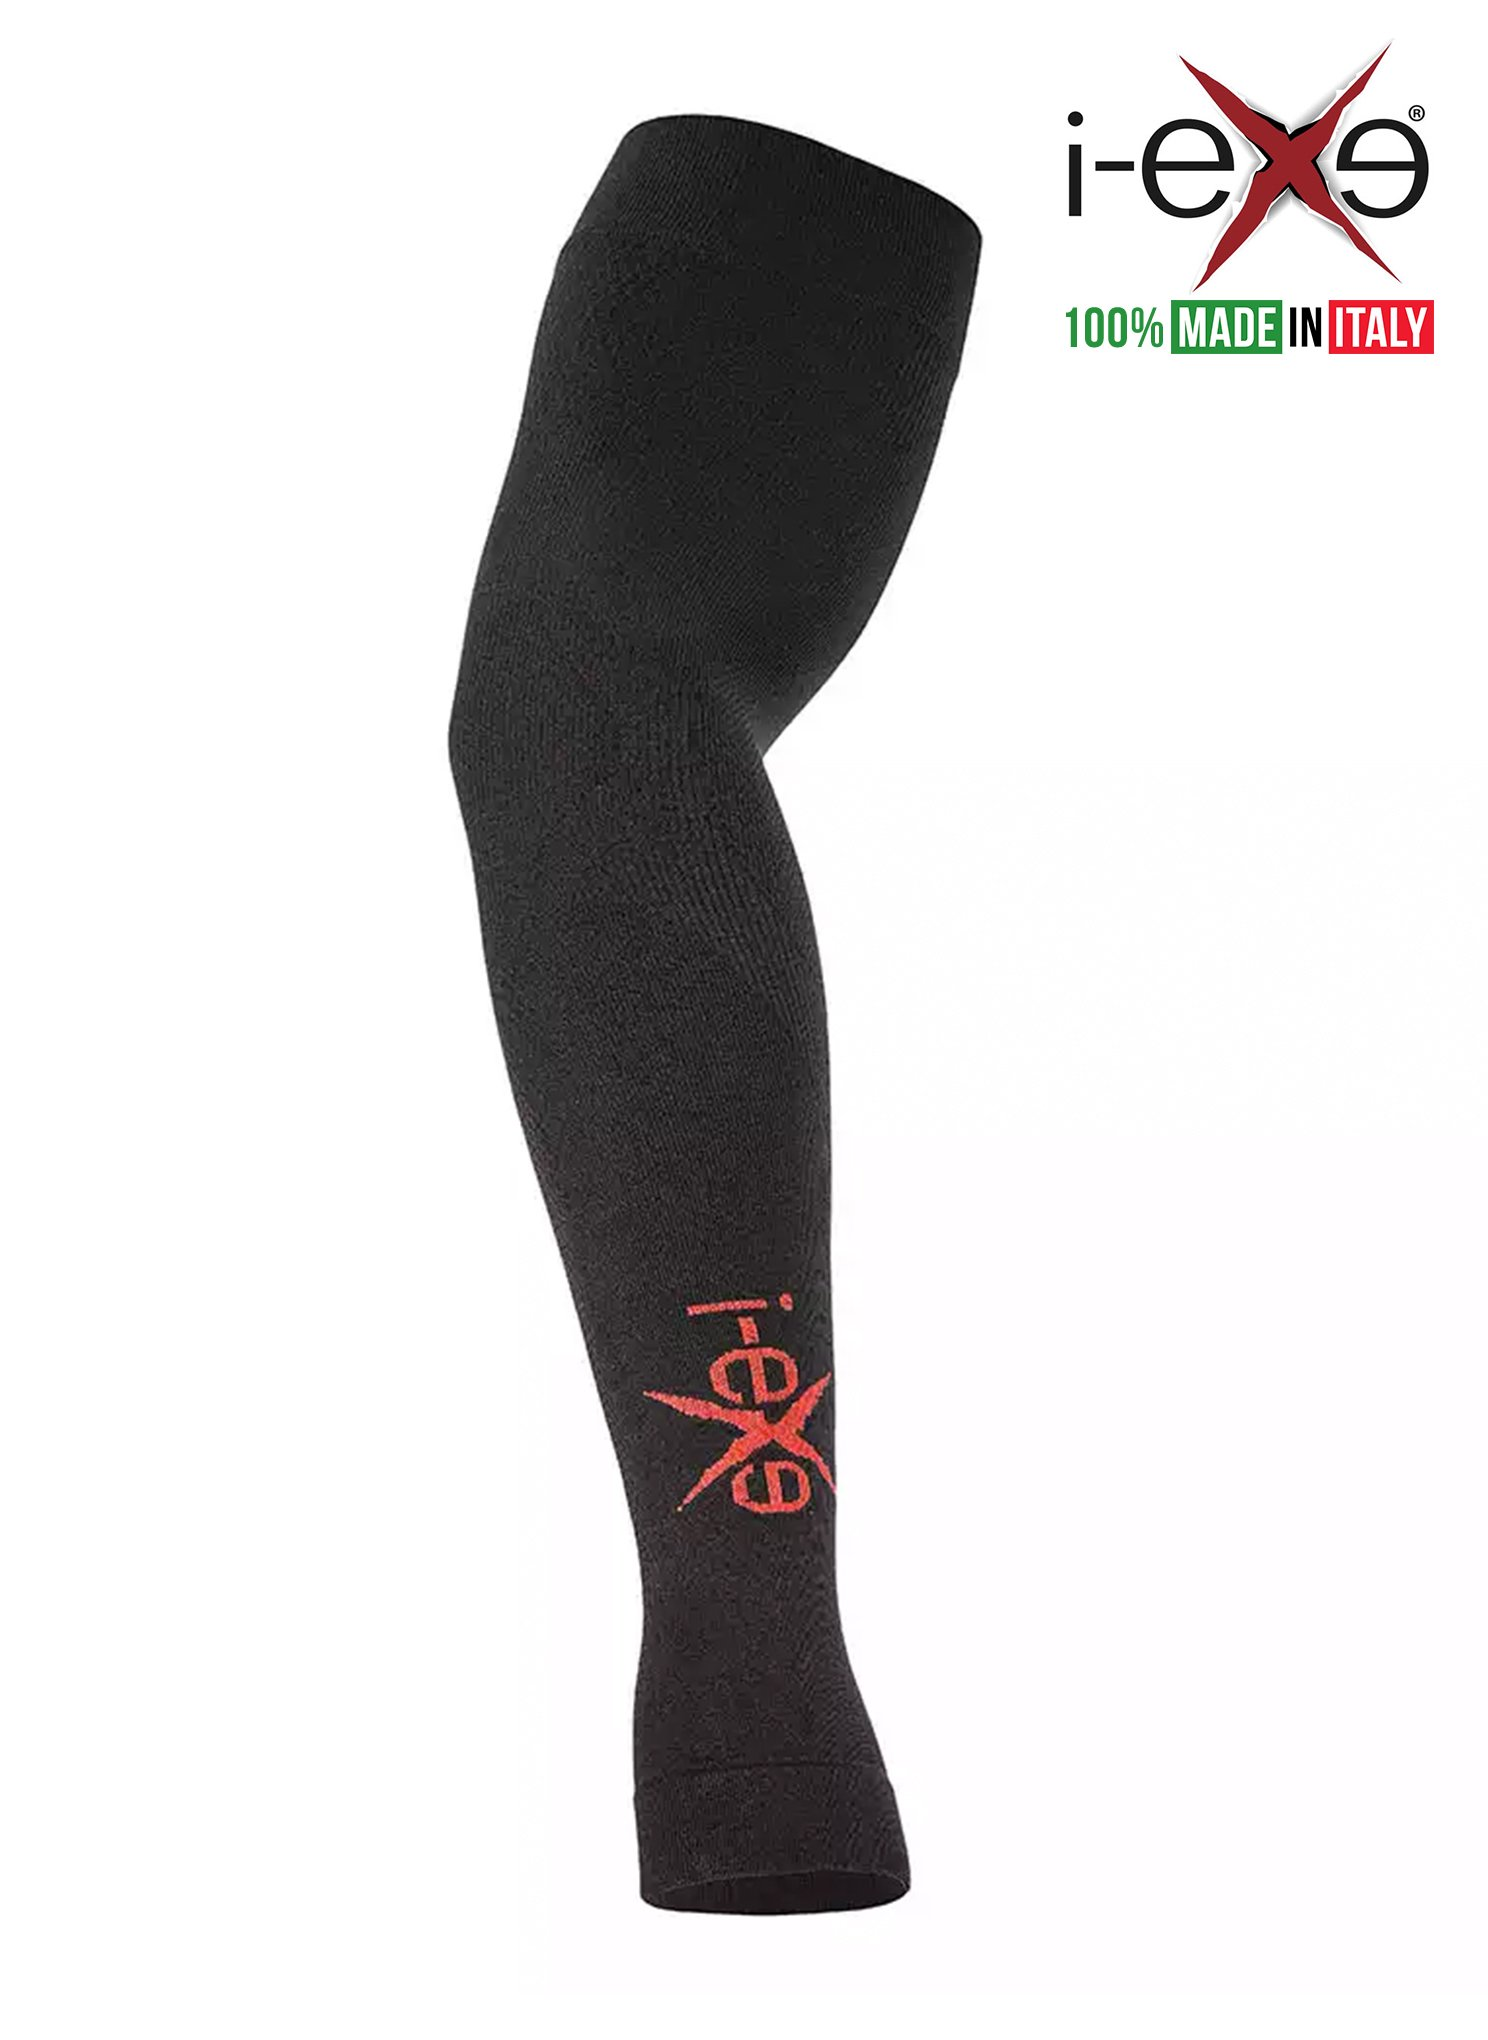 I-EXE - Made in Italy - MEDIXSPORT LINE/Compression Arm Warmer Sleeves/For Men Women Nurses Athletes/For Cycling, Jogging, Running, Hiking, Gym, Fitness/Improving Endurance, Muscle Recovery